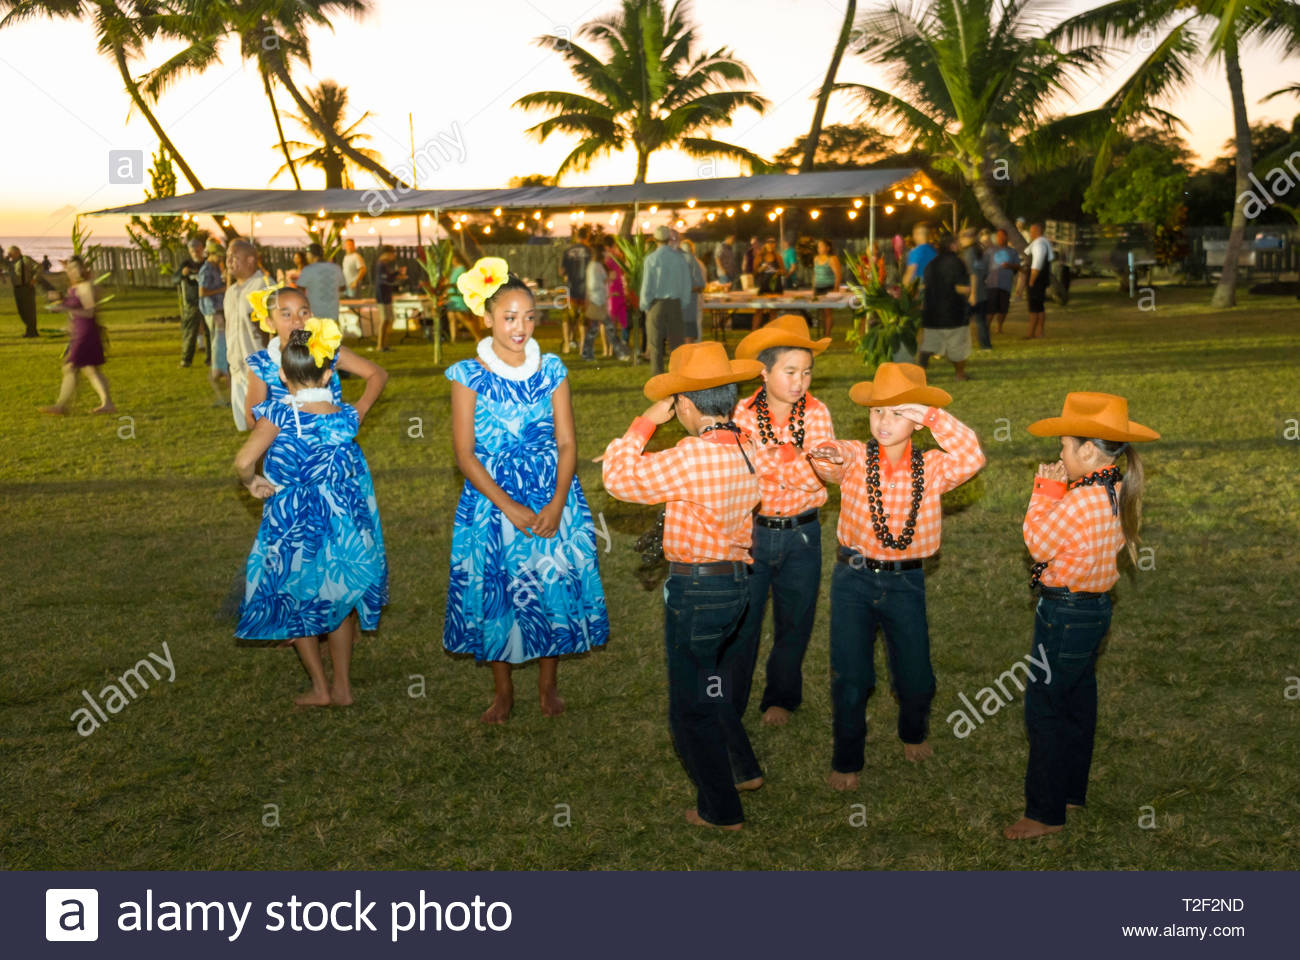 ae2f4277 Young children wearing Paniolo or Hawaiian cowboy costumes featuring orange  palaka shirts, jeans and cowboy